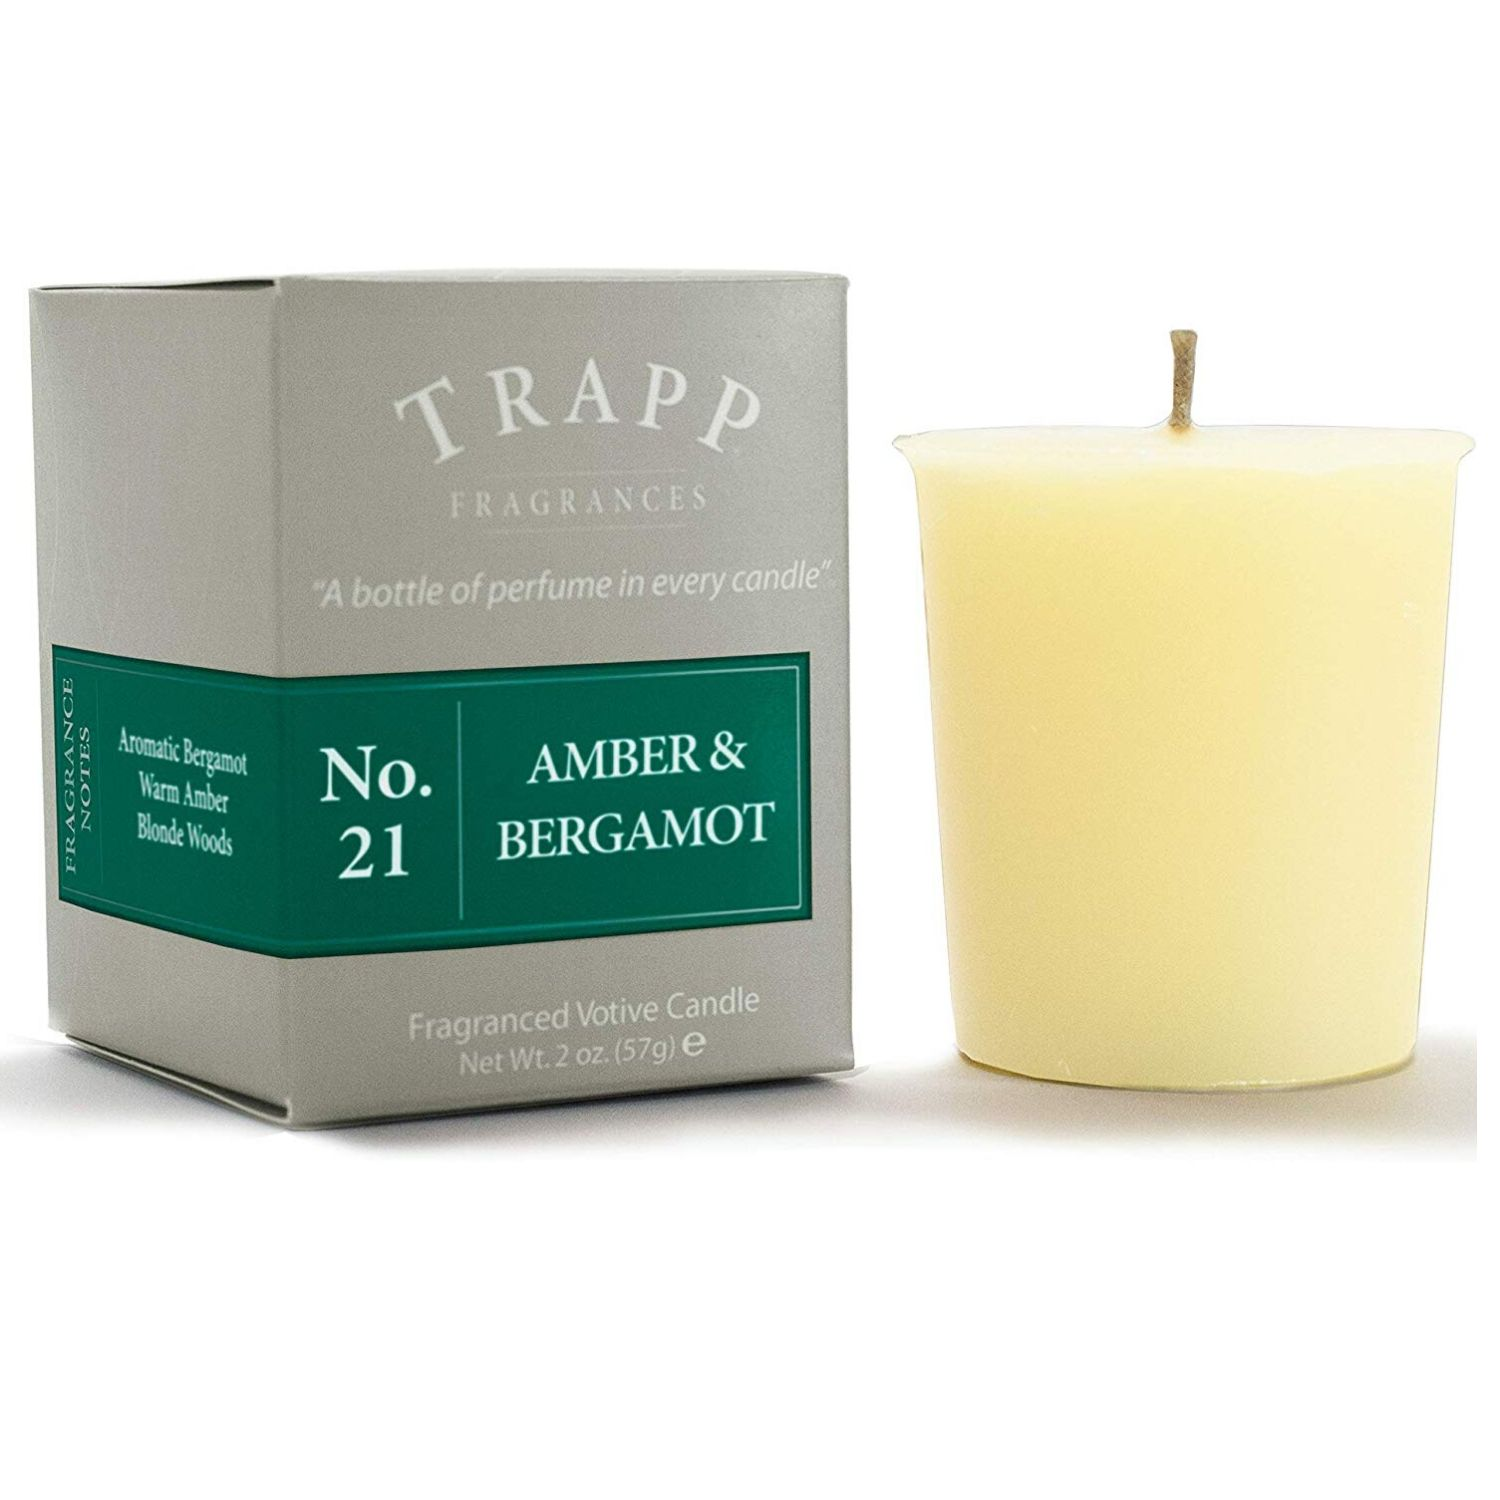 Trapp Signature Home Collection ,Amber & Bergamont Votive Scented Candle